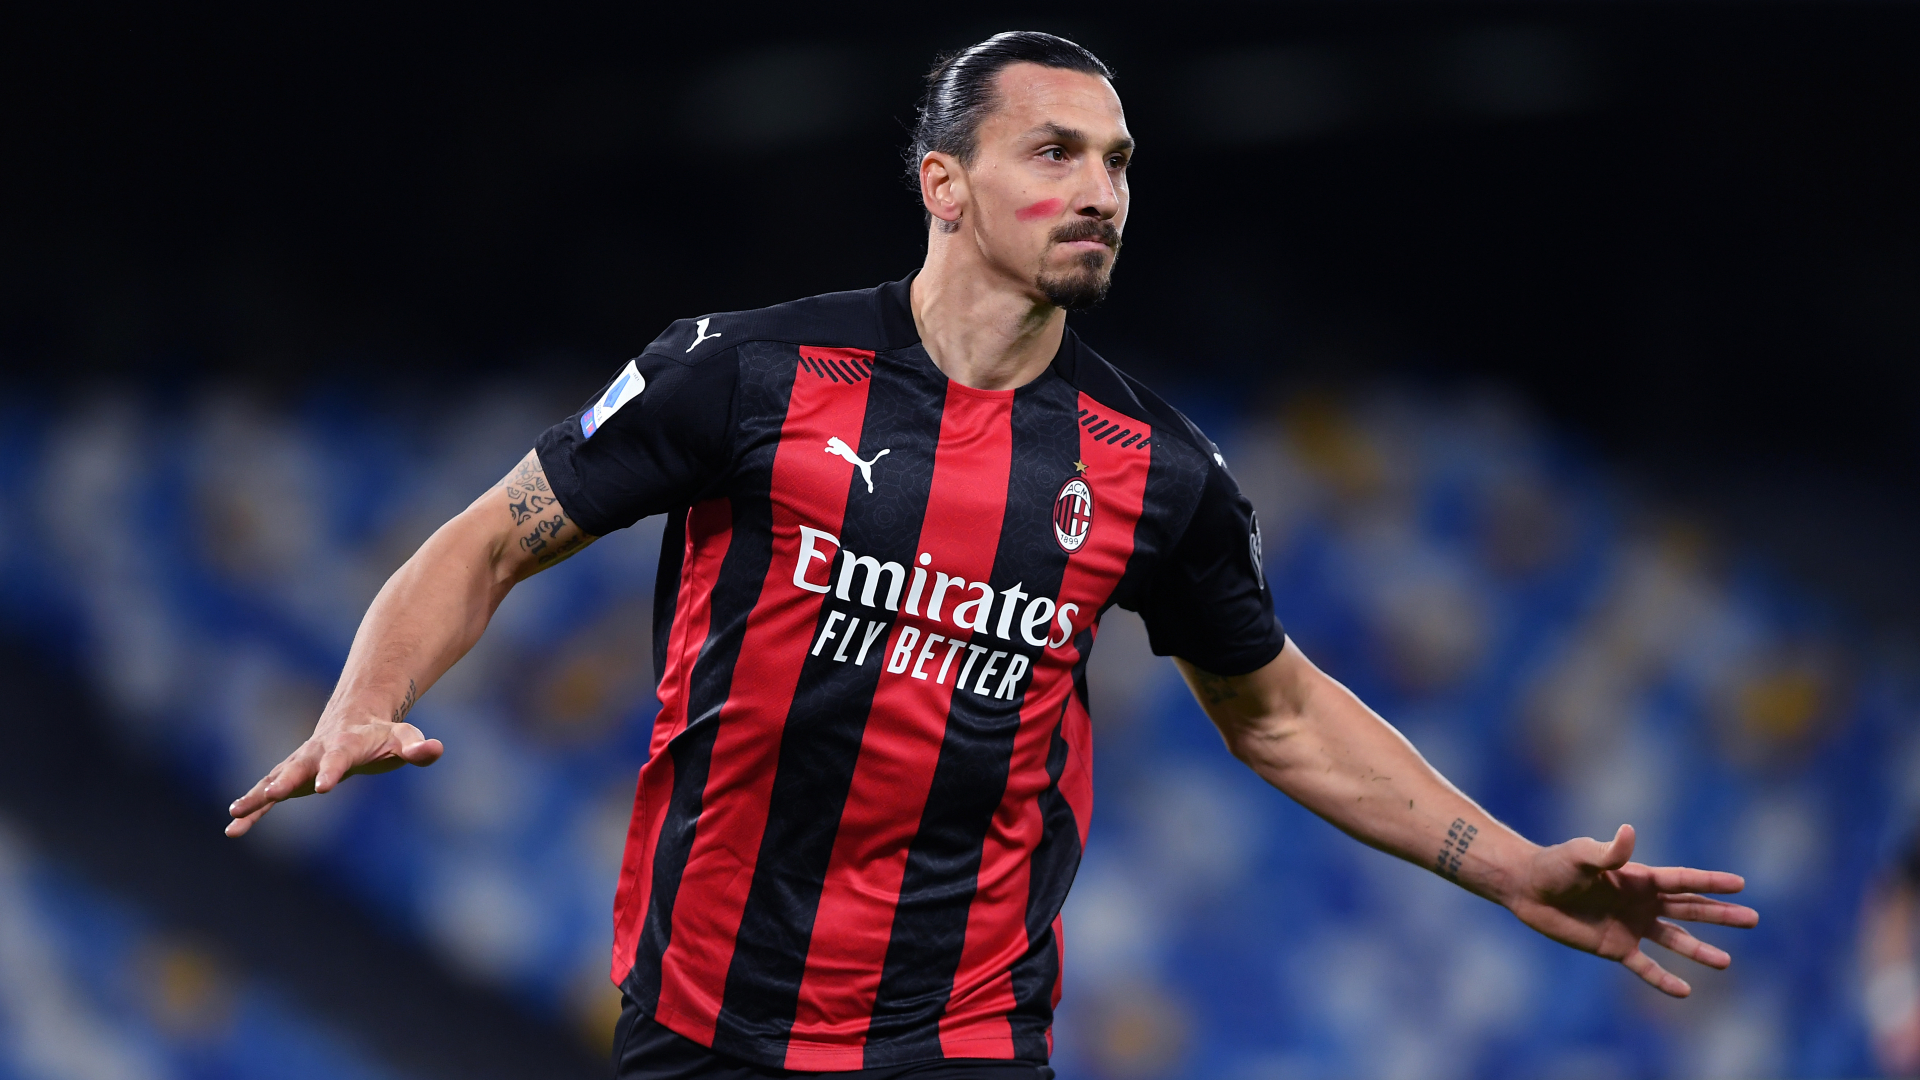 Ibrahimovic says injury 'nothing serious' and he misses playing for Sweden